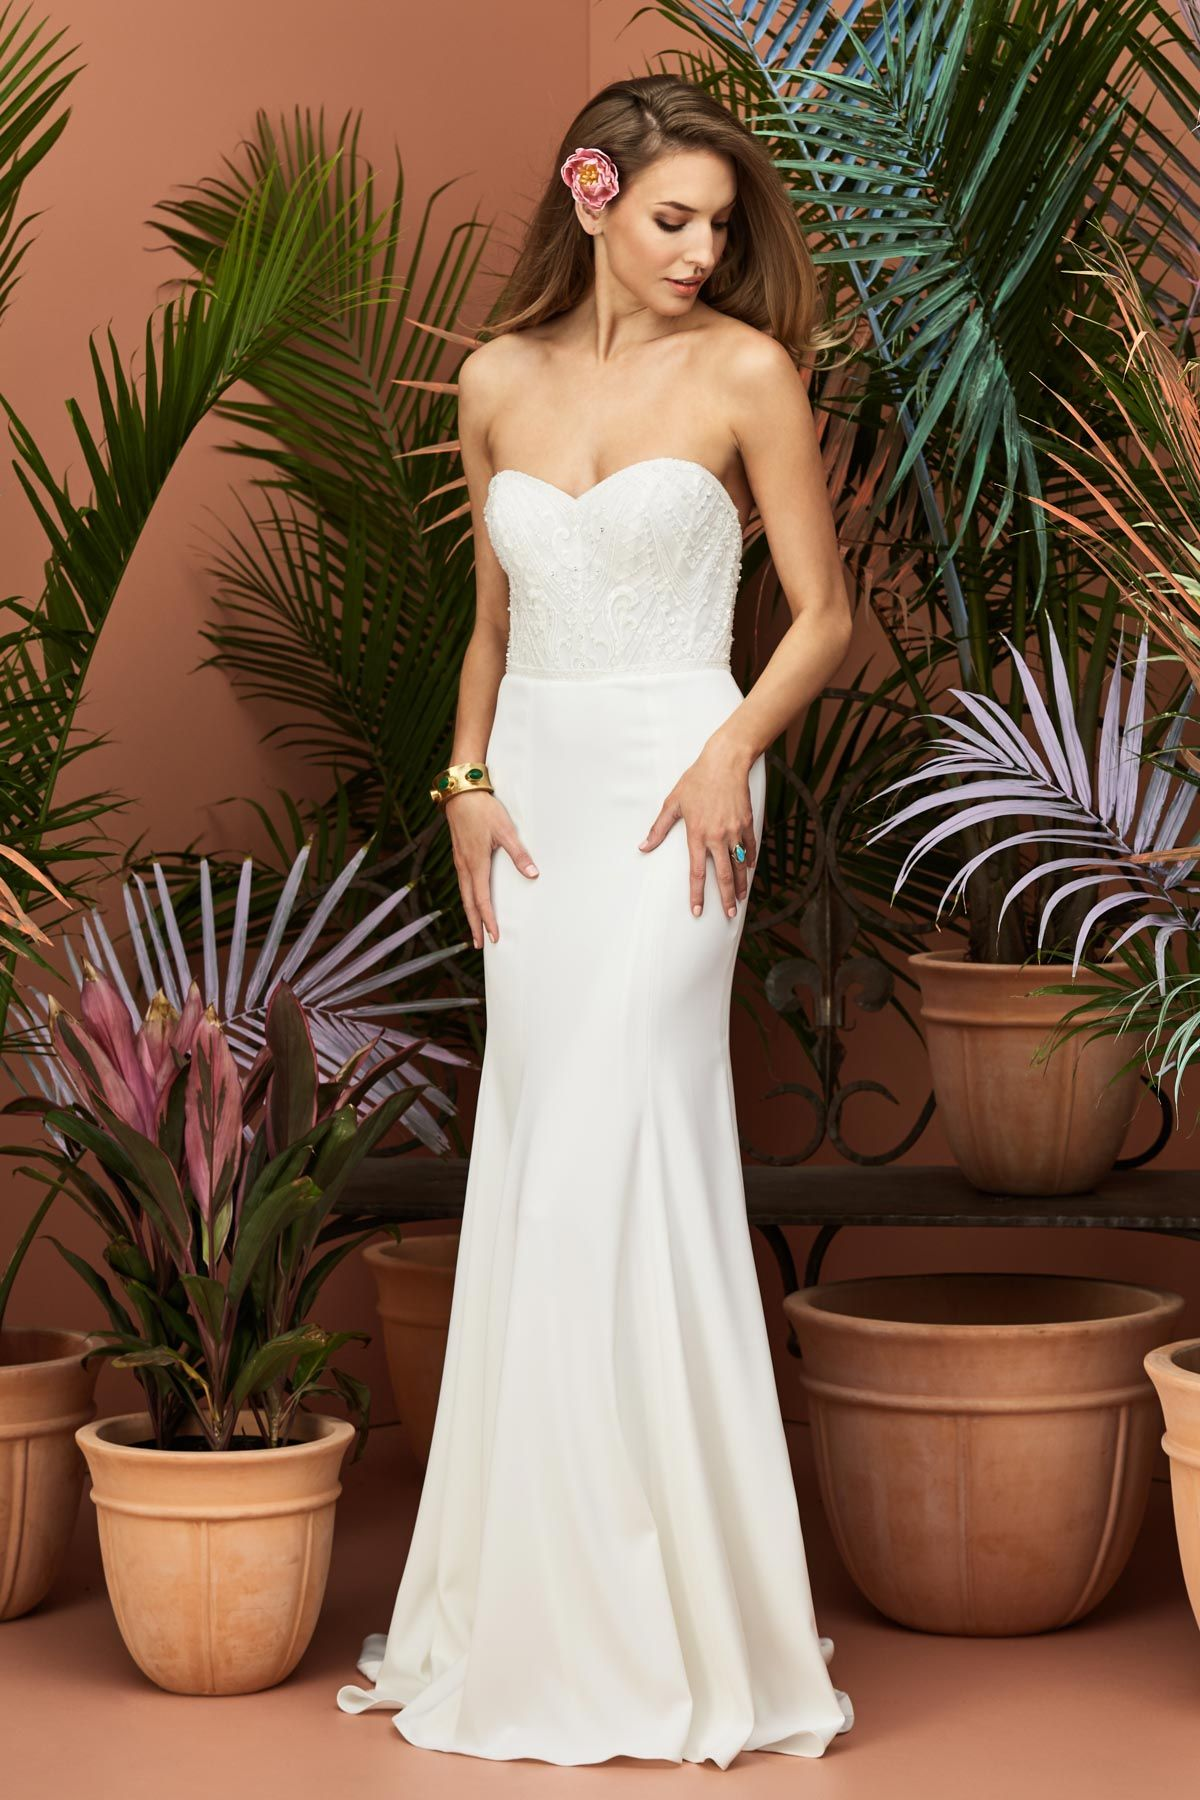 This beautiful wedding dress with a strapless sweetheart neckline